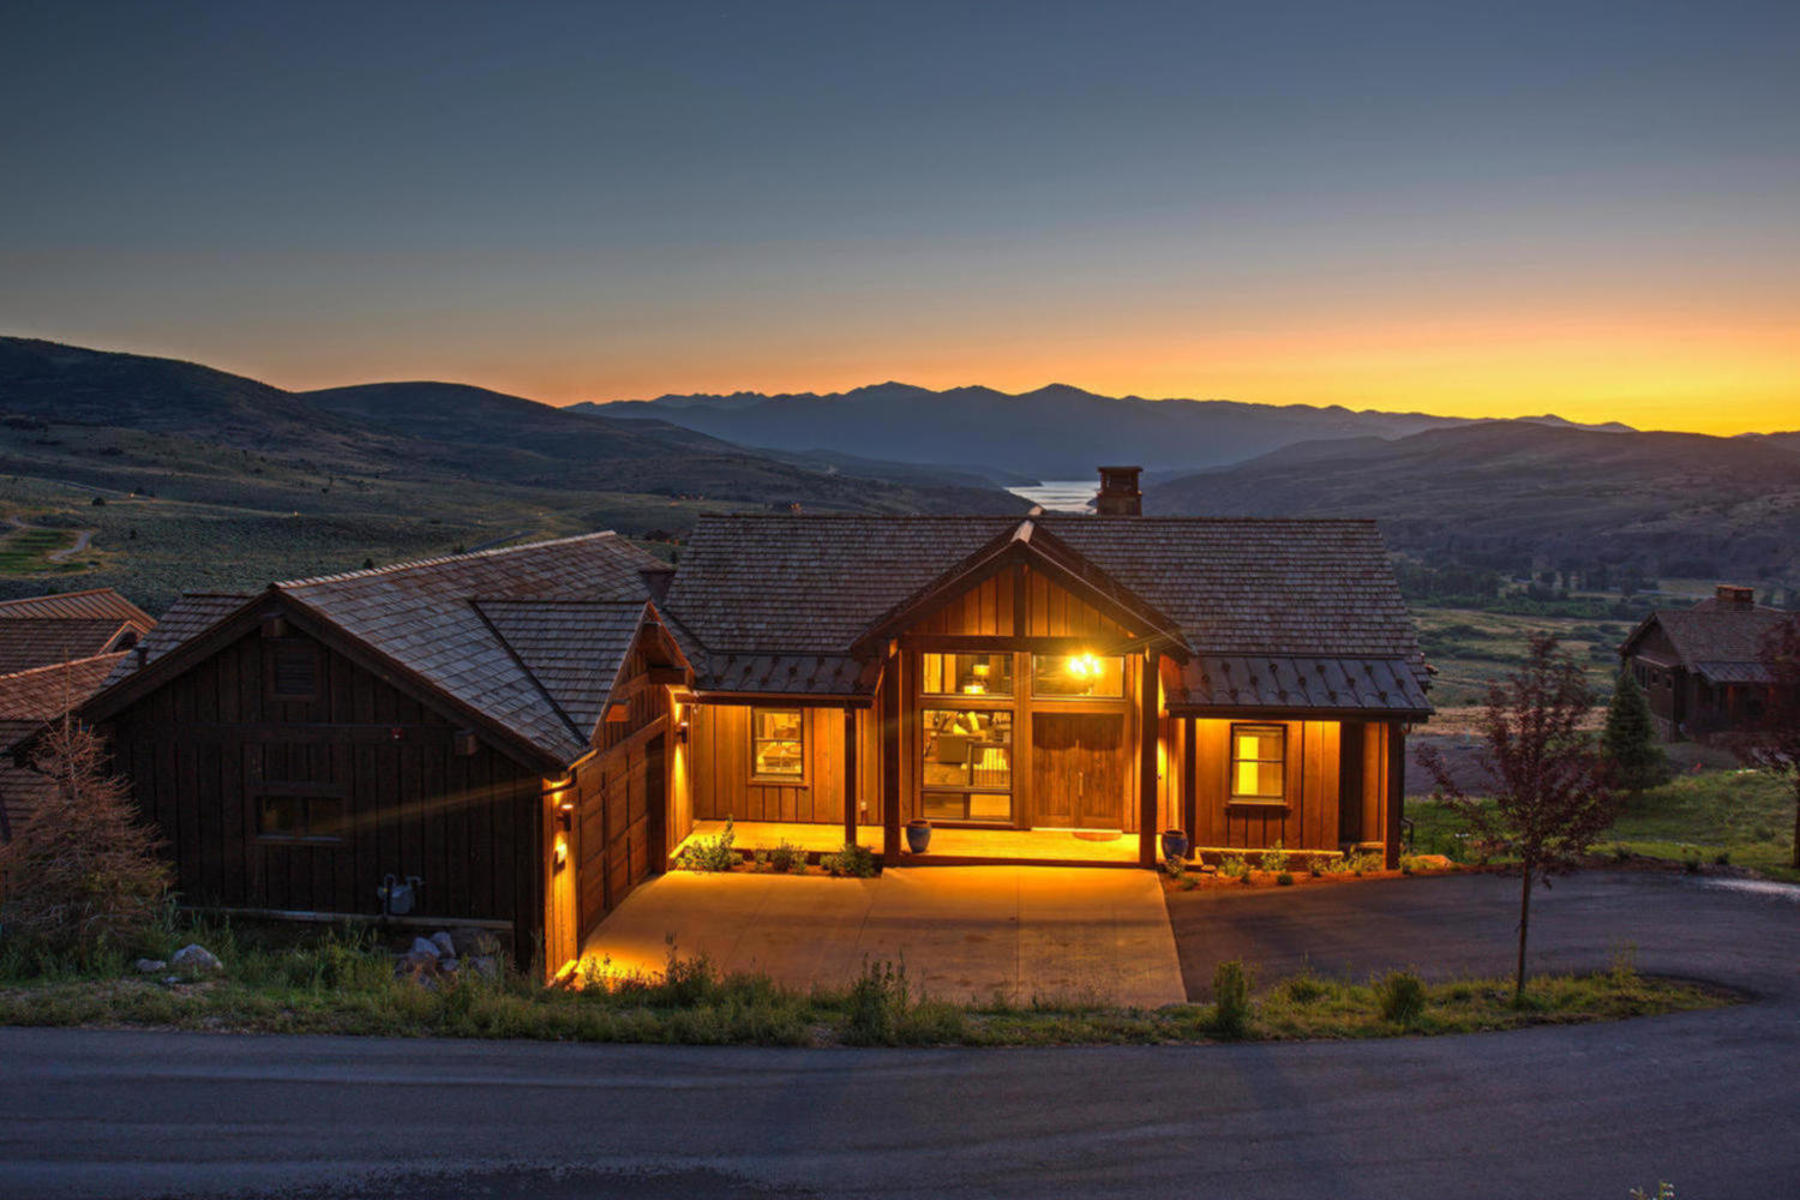 Single Family Homes for Active at Juniper Cabin with Spectacular Views 6949 N Rees Jones Wy Lot 165 Heber City, Utah 84032 United States